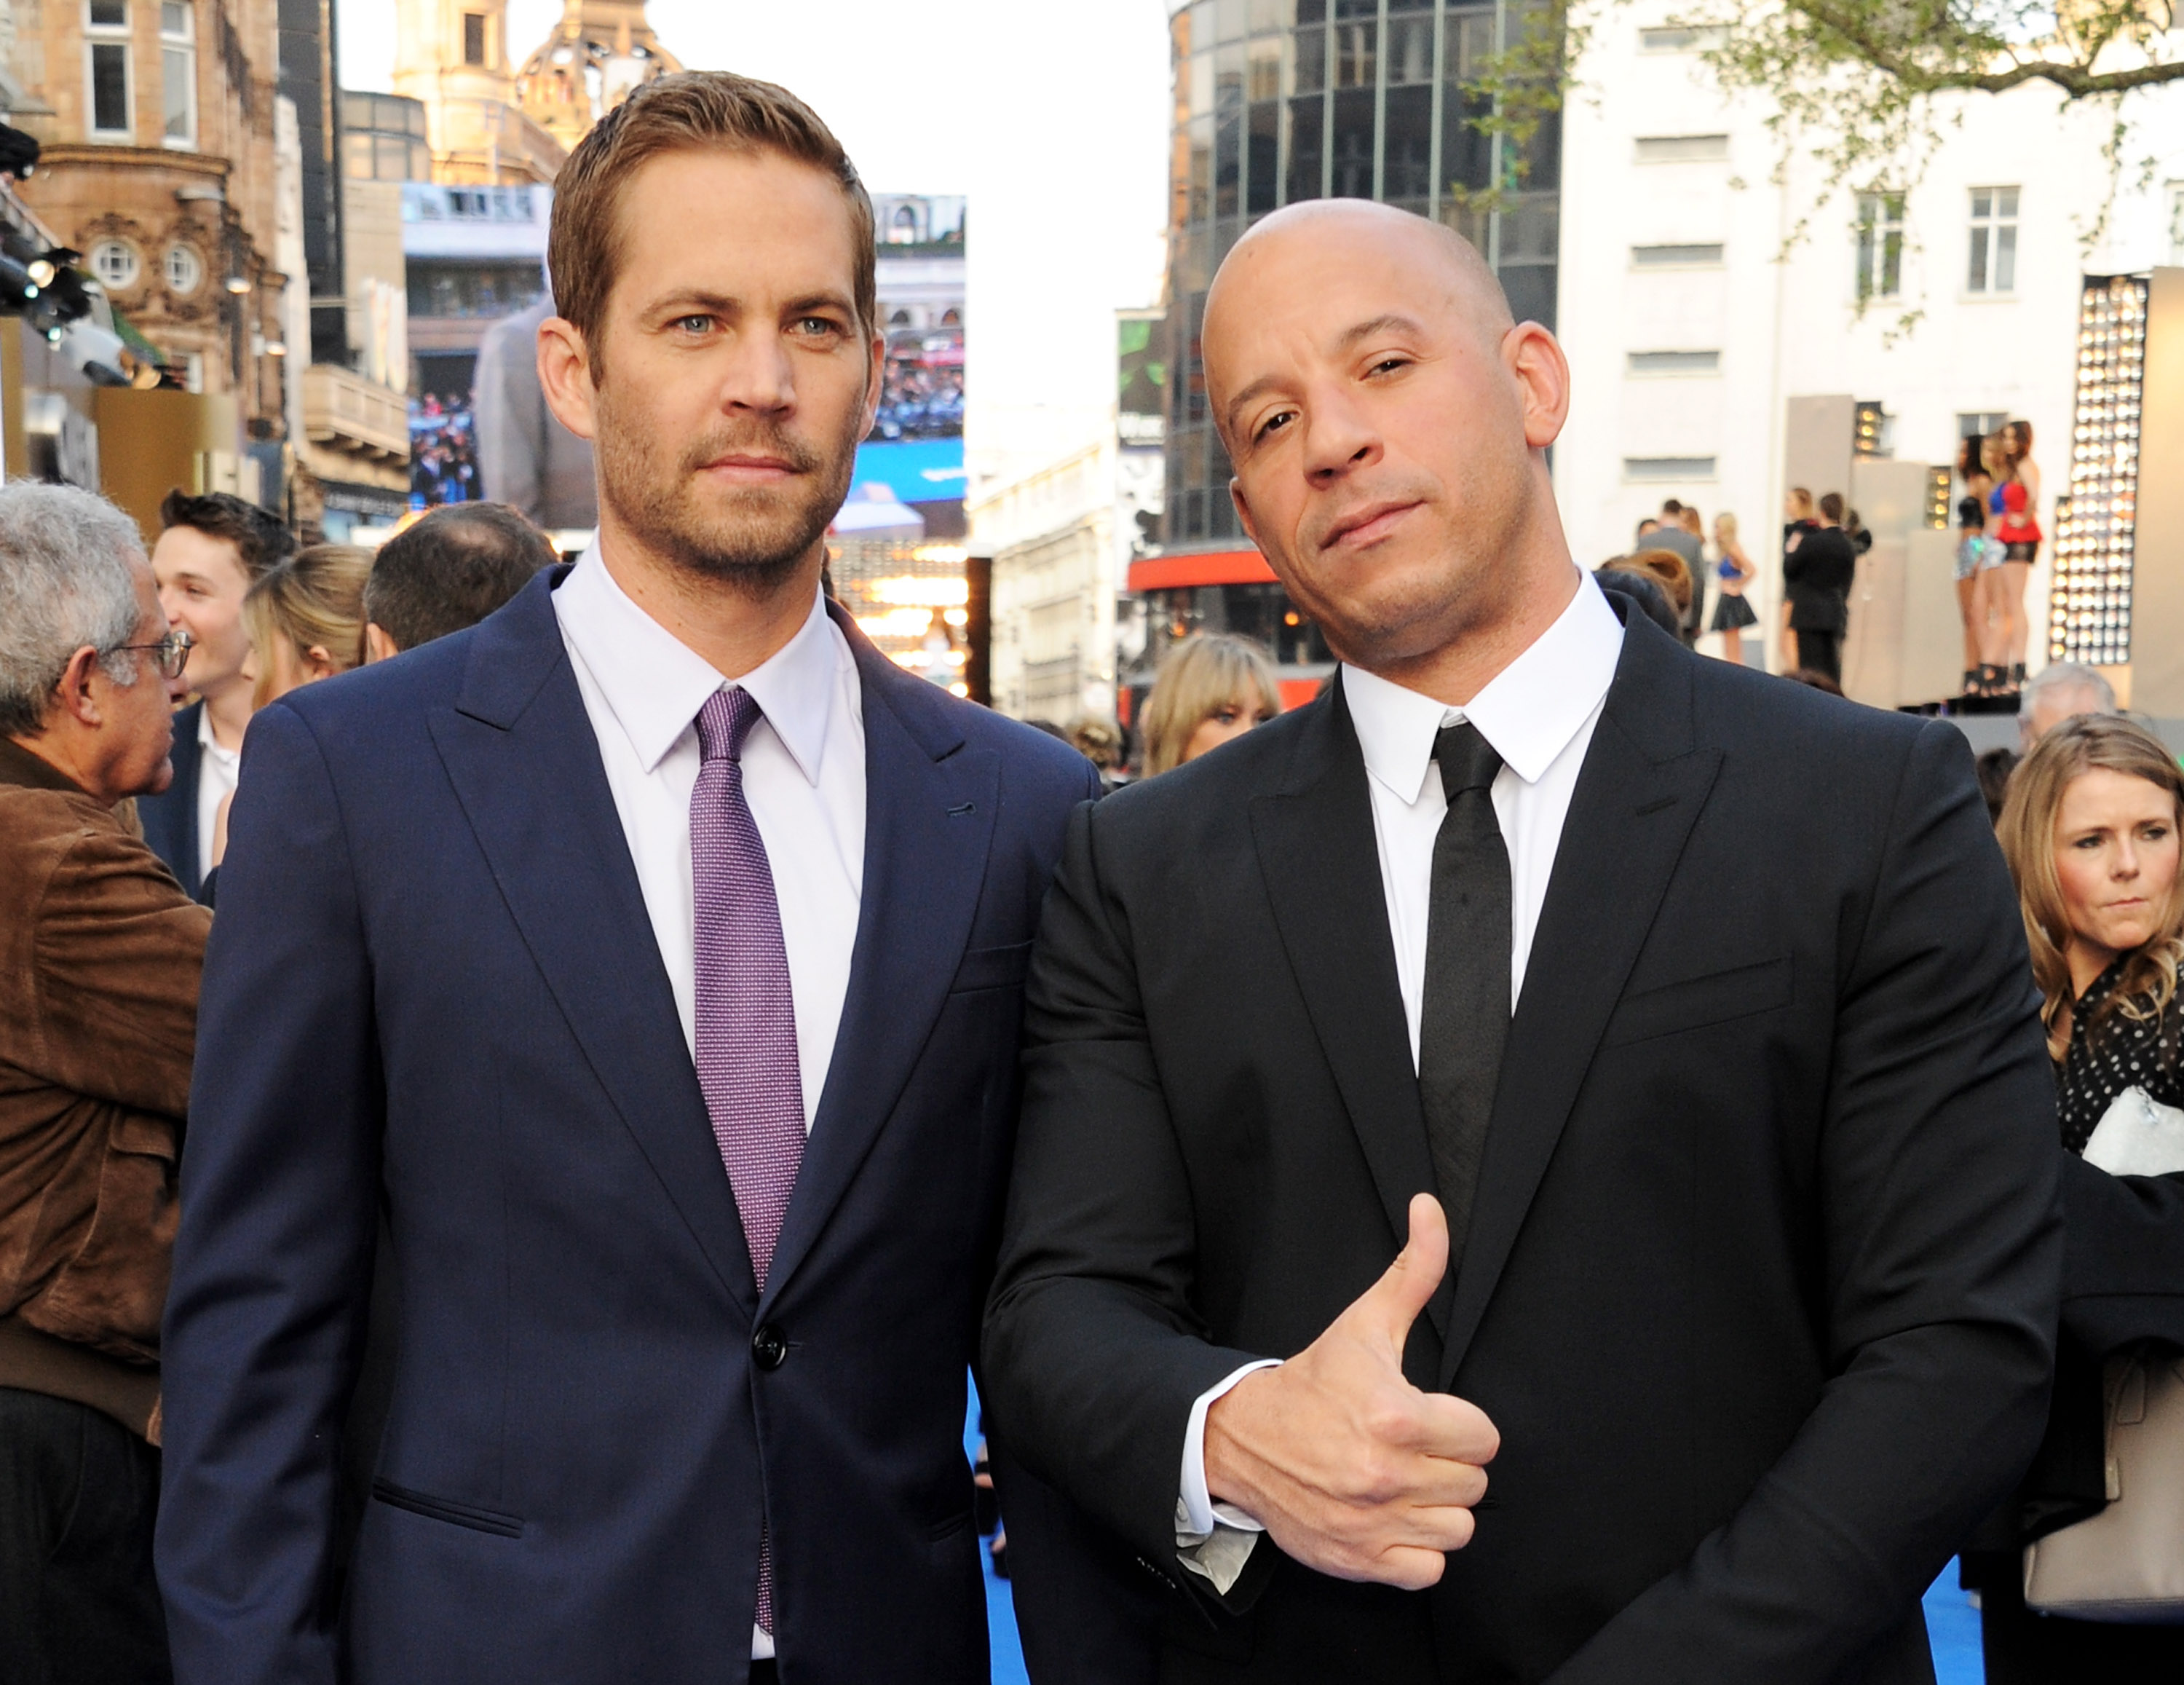 LONDON, ENGLAND - MAY 07:  (EMBARGOED FOR PUBLICATION IN UK TABLOID NEWSPAPERS UNTIL 48 HOURS AFTER CREATE DATE AND TIME. MANDATORY CREDIT PHOTO BY DAVE M. BENETT/WIREIMAGE REQUIRED)  Paul Walker (L) and Vin Diesel attend the World Premiere of 'Fast & Furious 6' at Empire Leicester Square on May 7, 2013 in London, England.  (Photo by Dave M. Benett/WireImage)